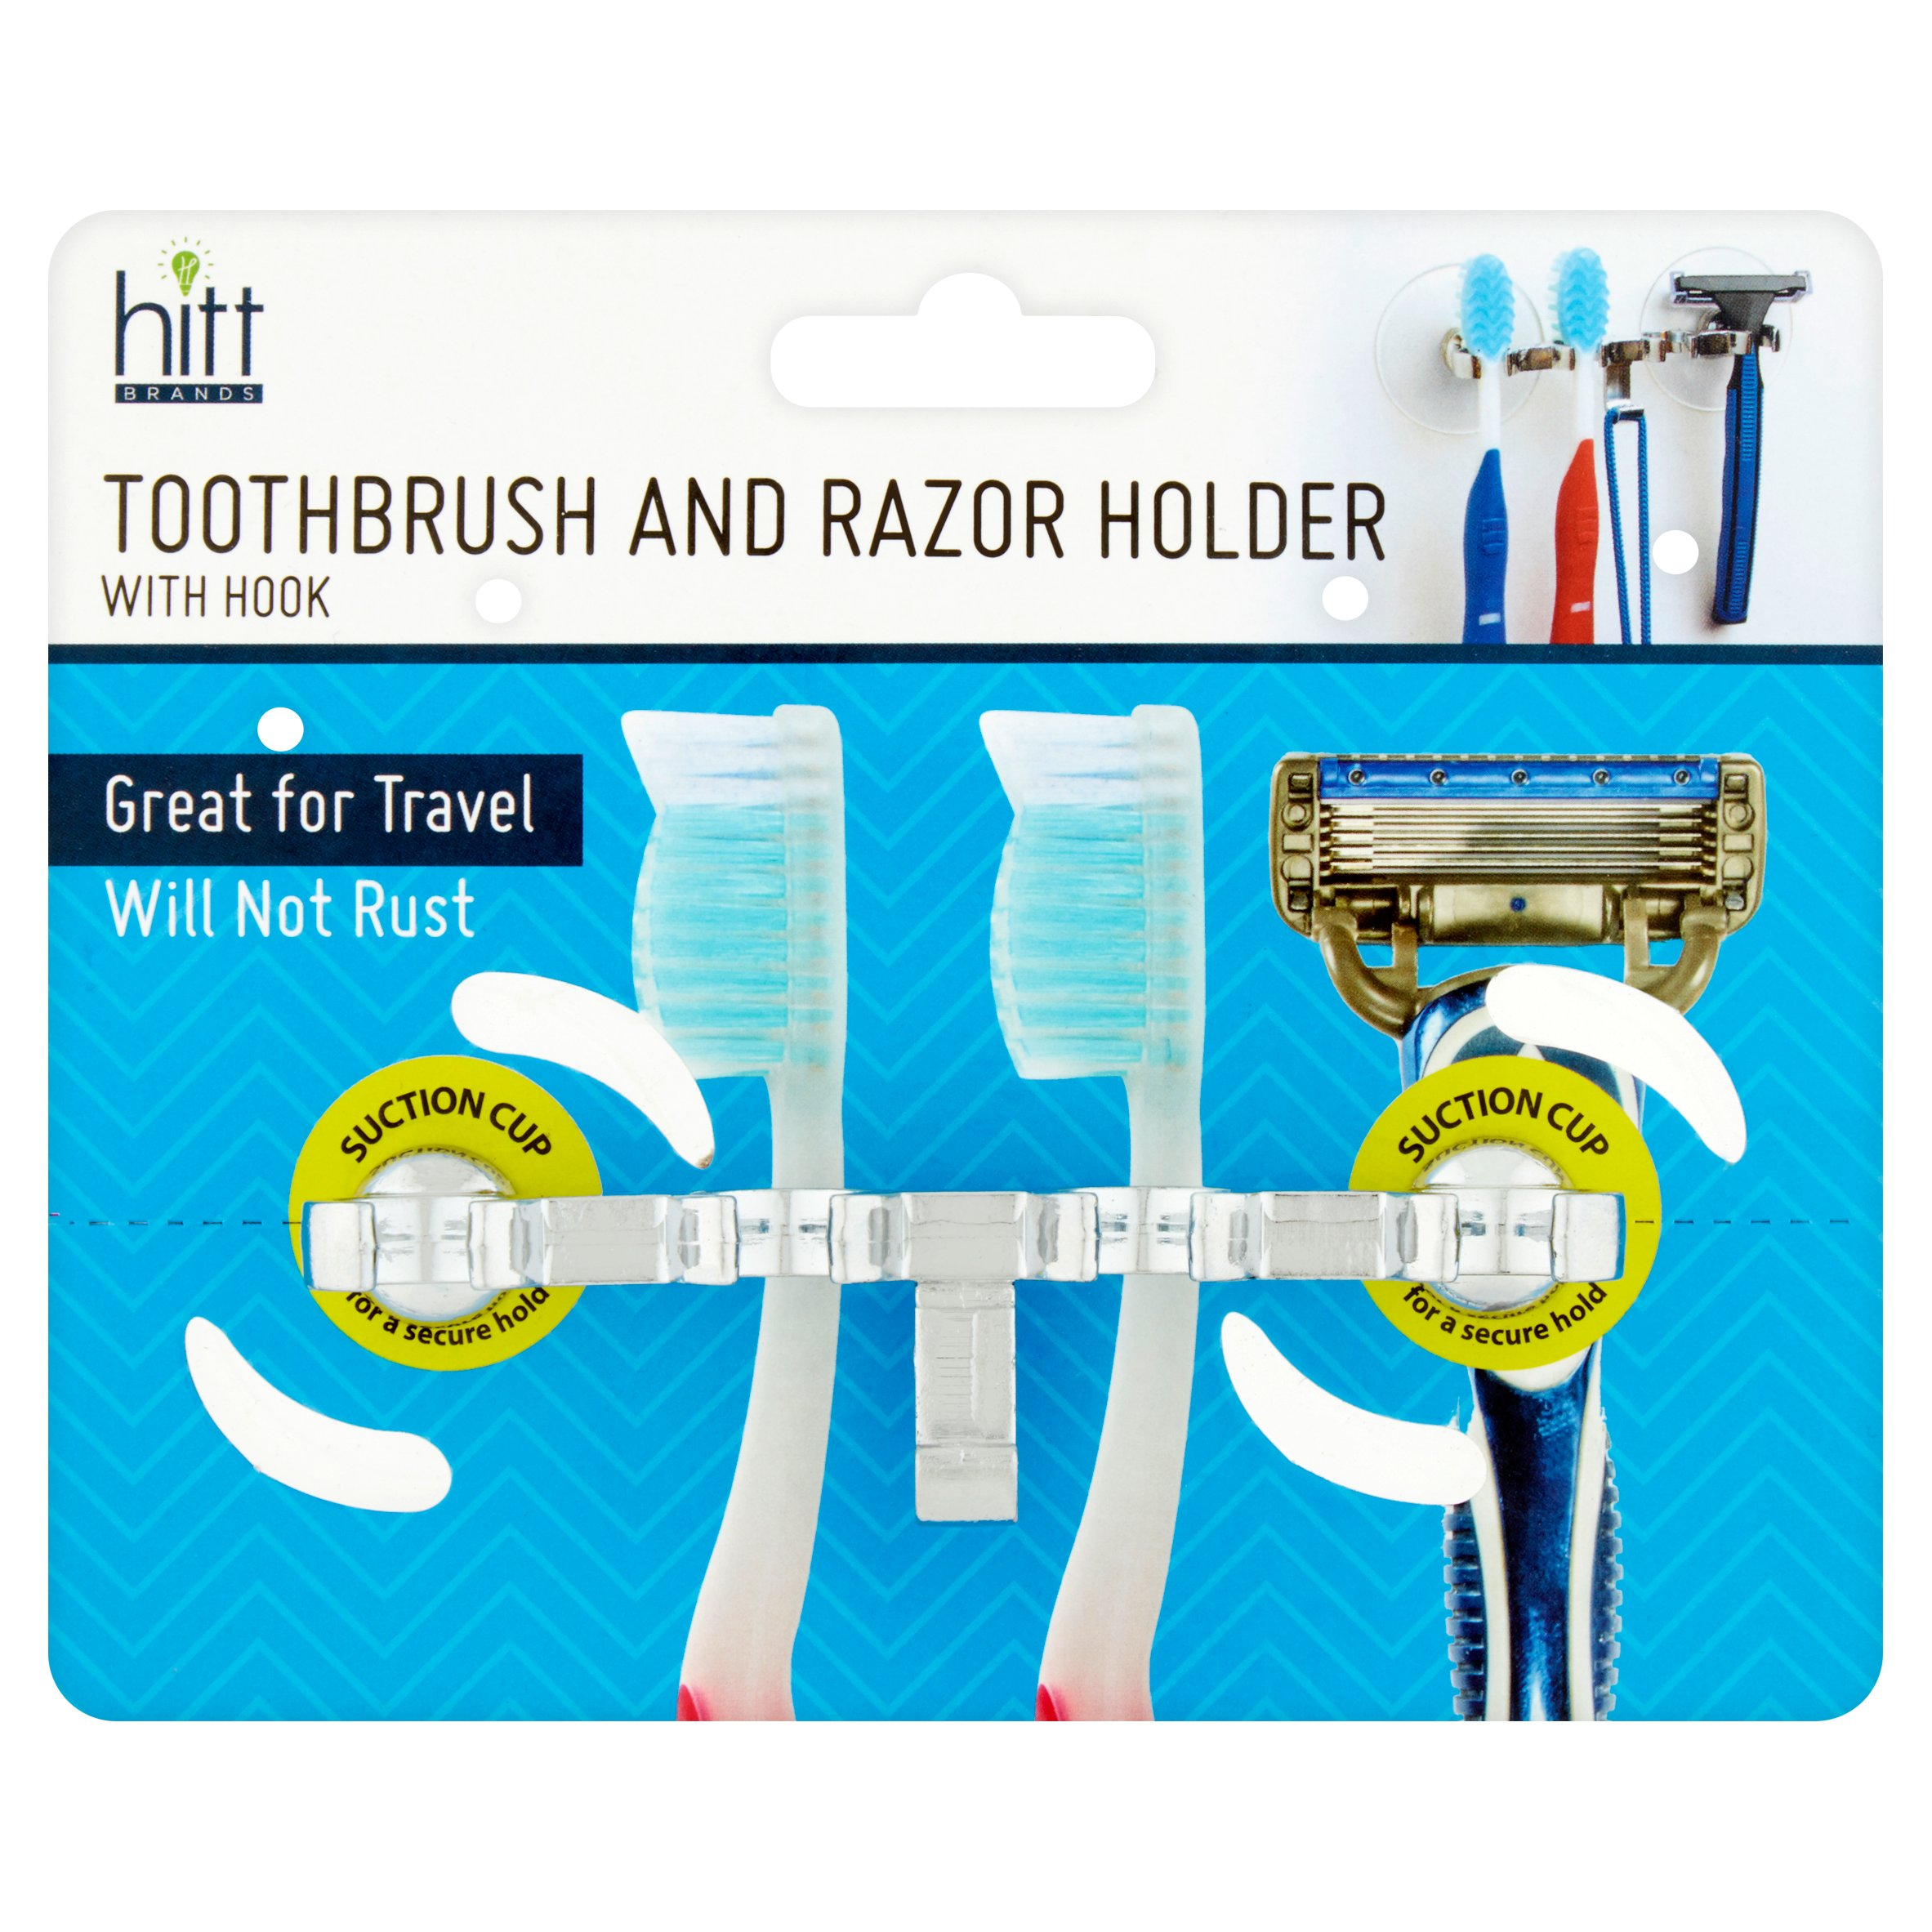 Hitt Brands Toothbrush and Razor Holder with Hook